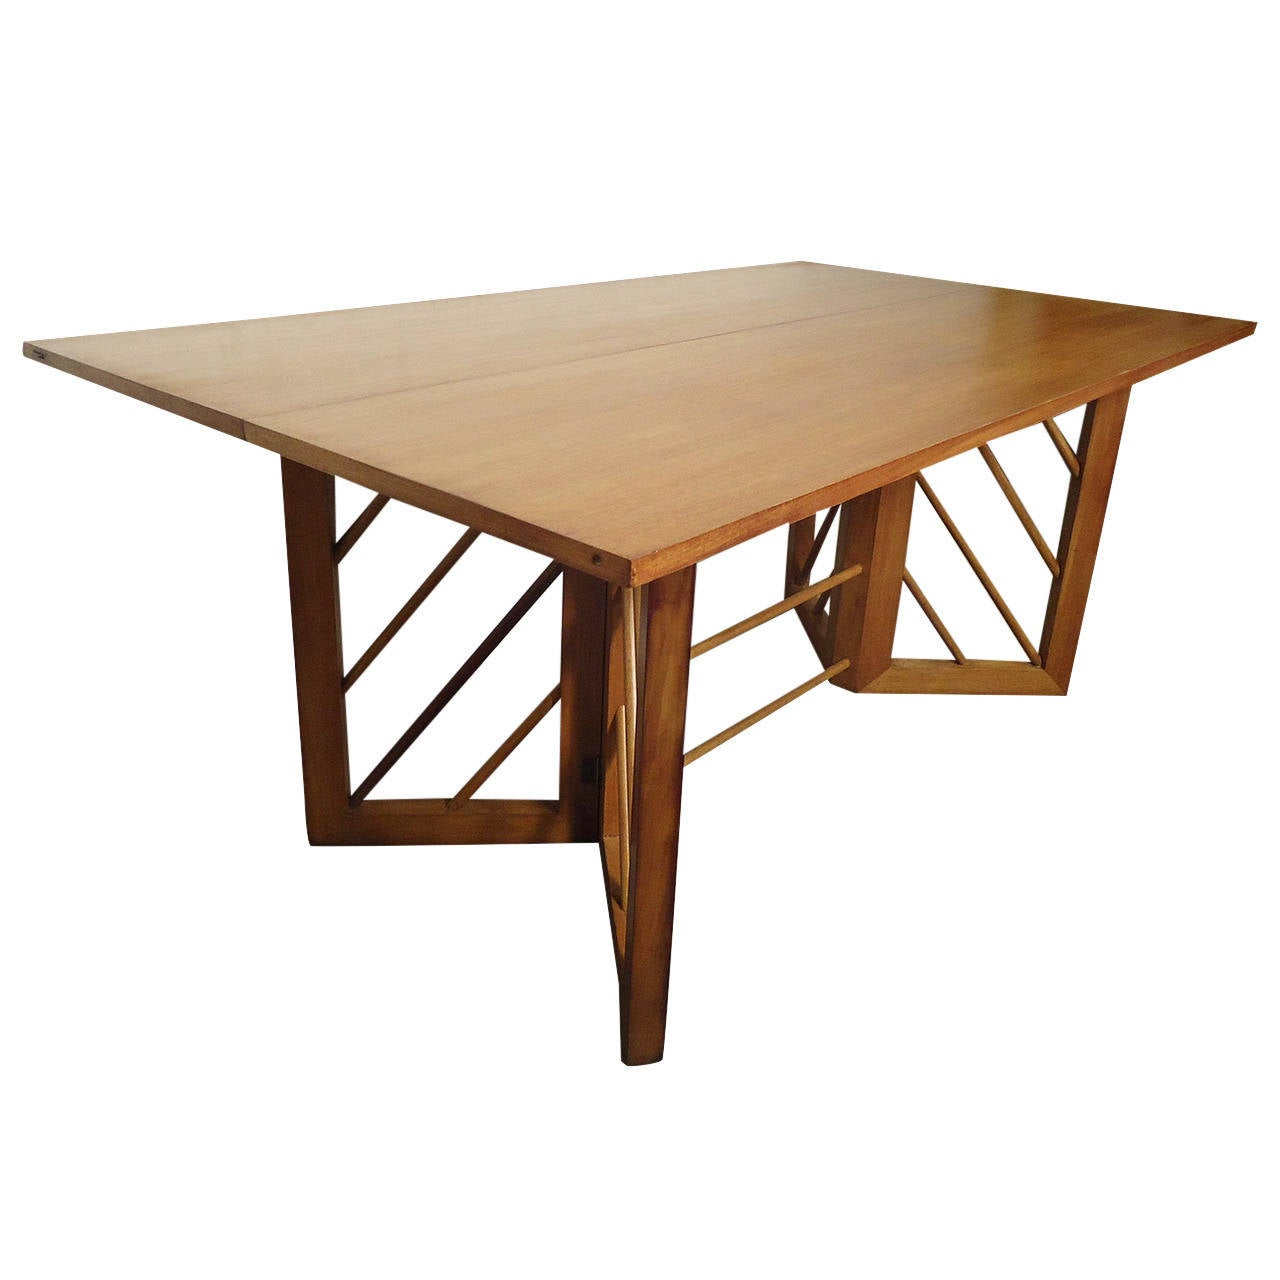 Mid century modern folding console or dining table at 1stdibs for Mid century modern dining table